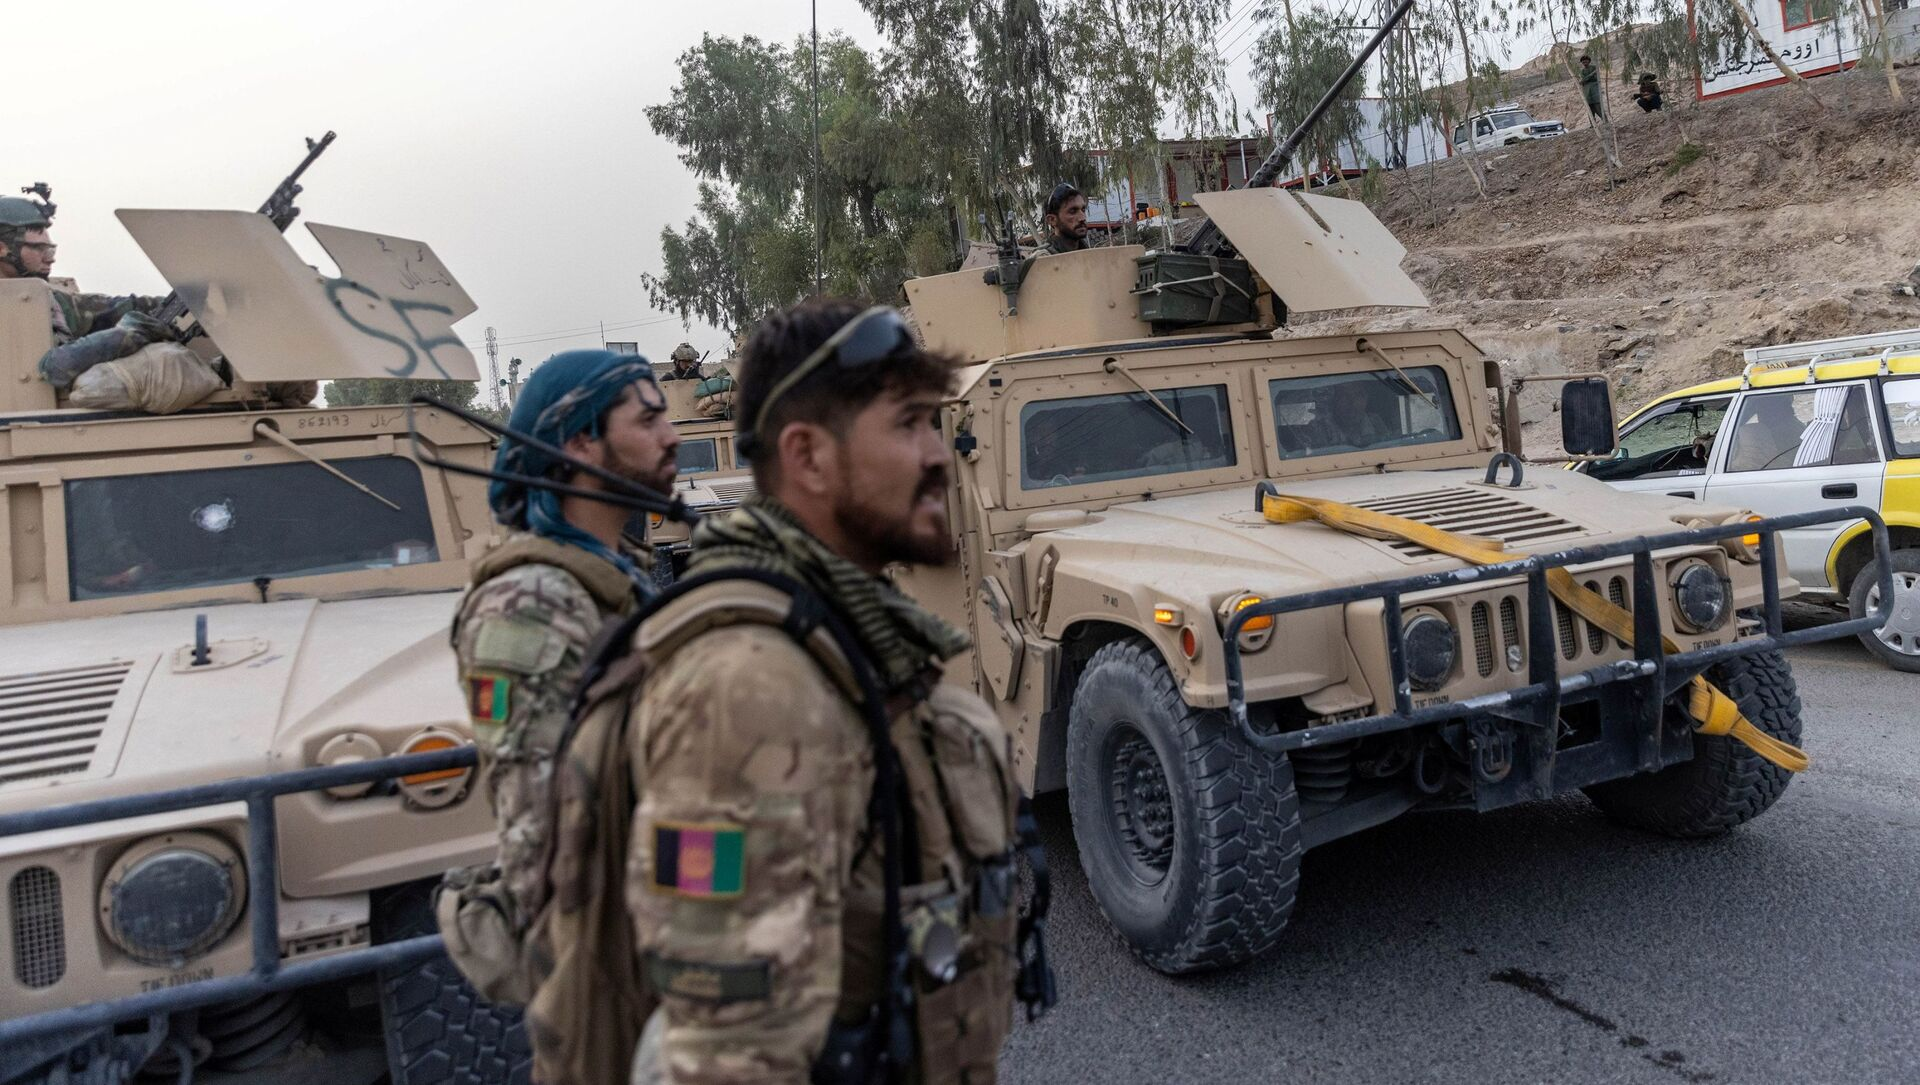 A convoy of Afghan Special Forces is seen during the rescue mission of a policeman besieged at a check post surrounded by Taliban, in Kandahar province, Afghanistan, July 13, 2021 - Sputnik International, 1920, 02.08.2021